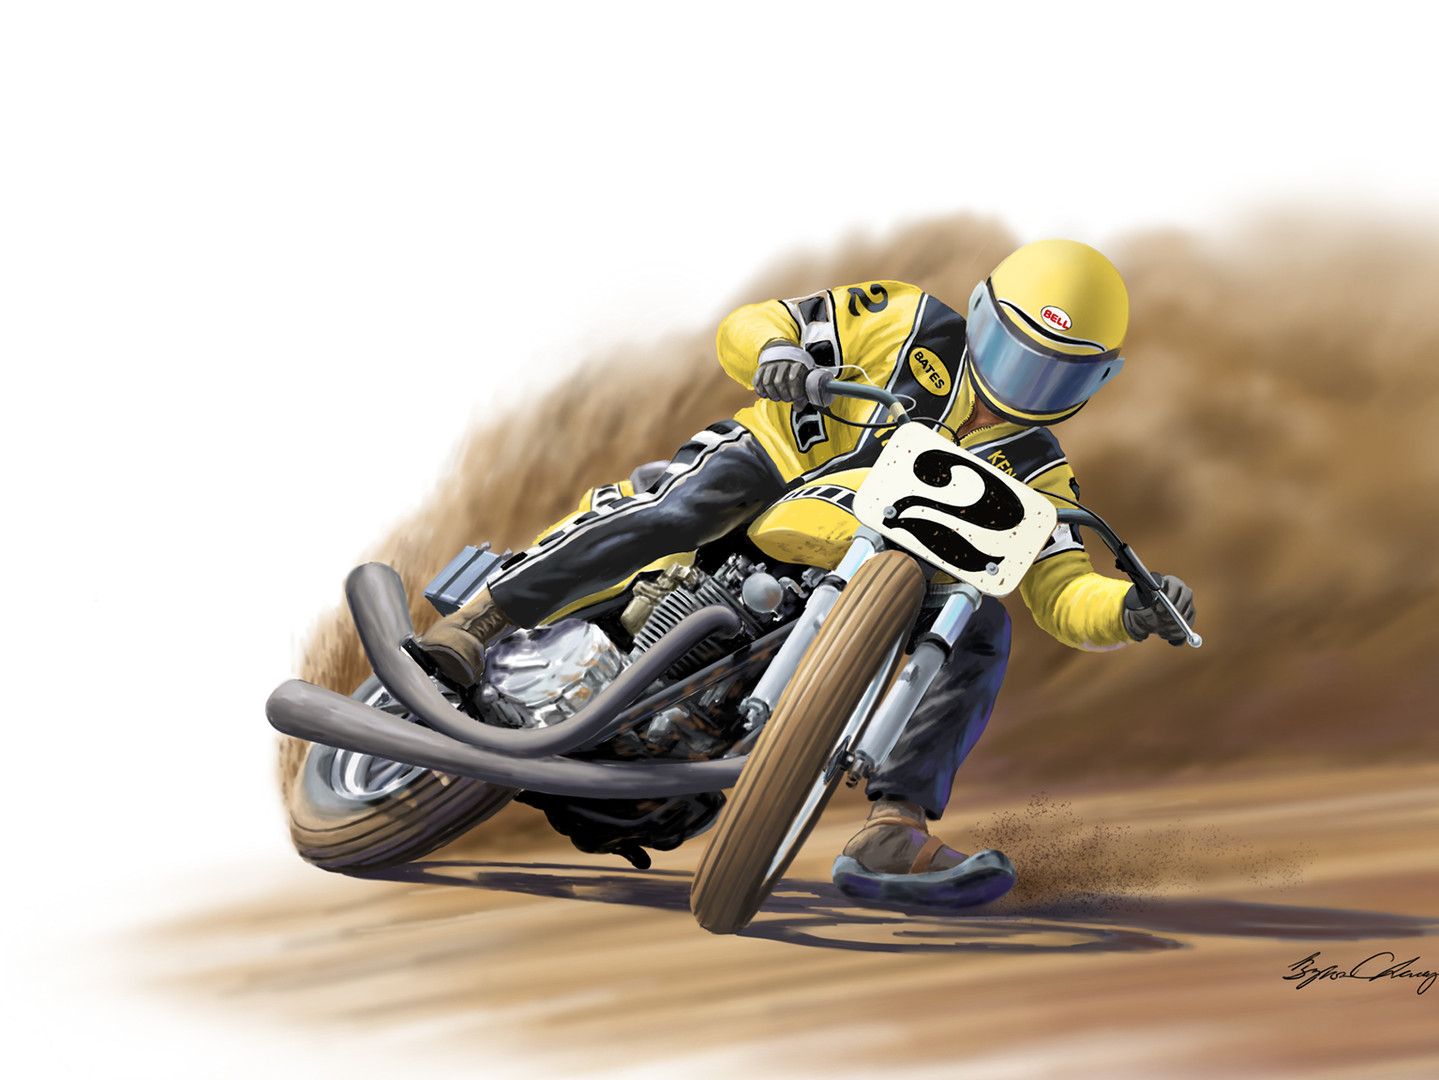 Kenny Roberts powerslide